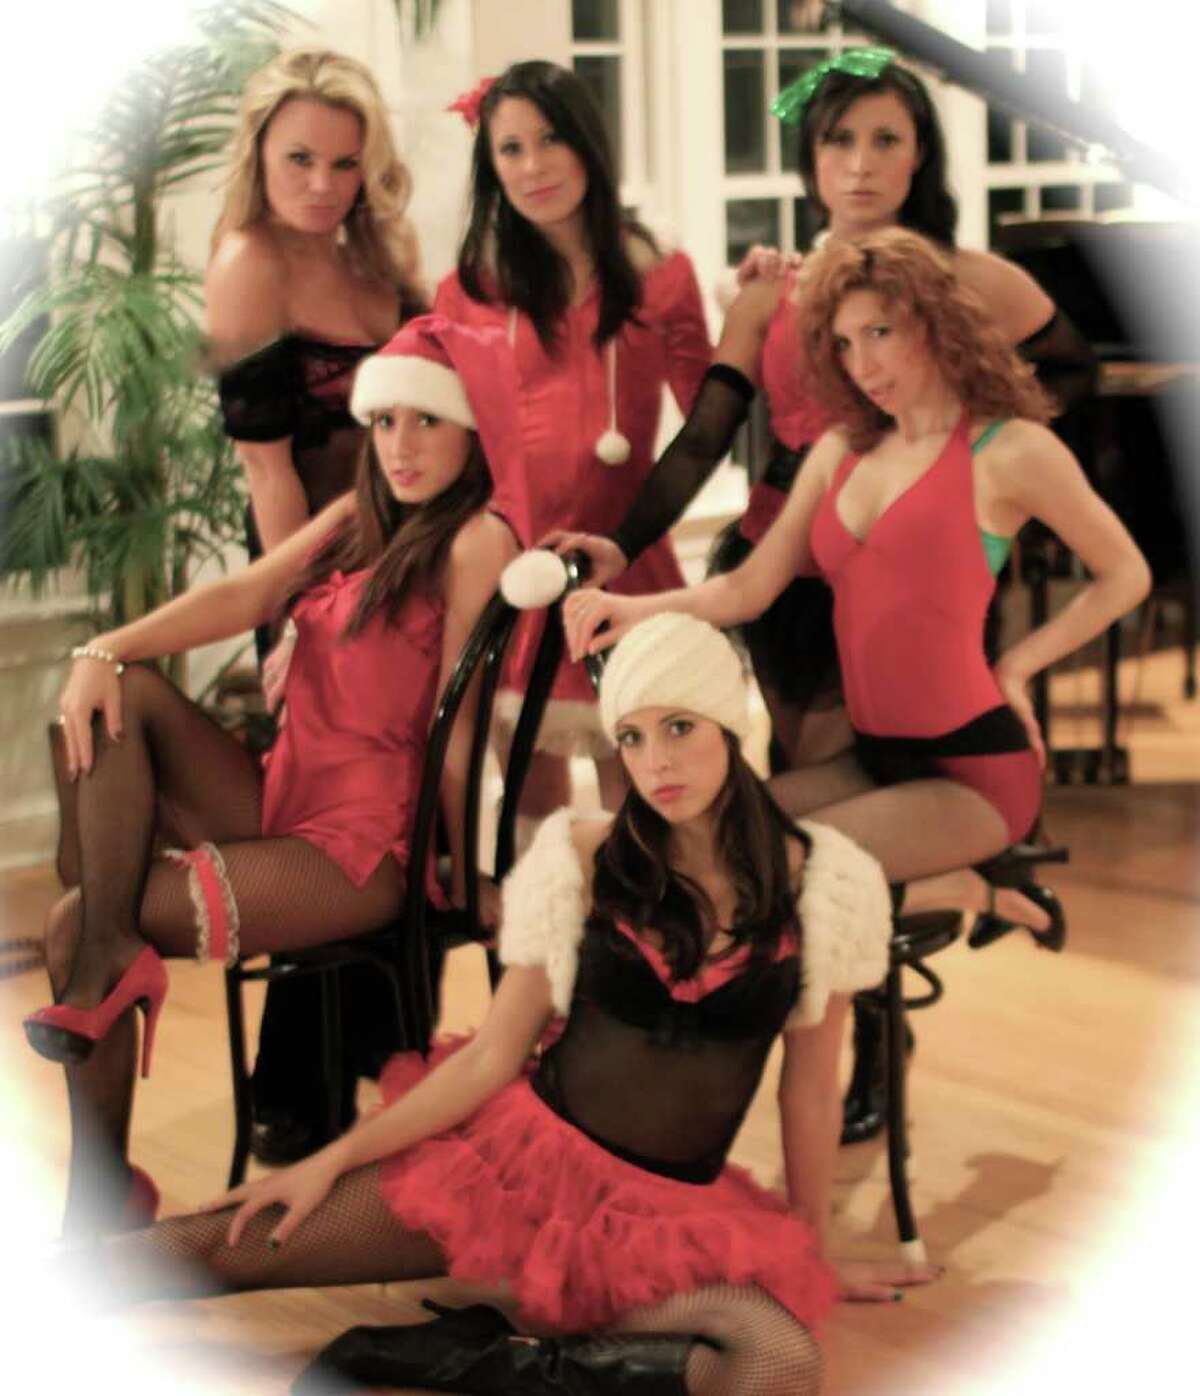 ìSantaís Babies: A Holiday Burlesque Showî will be presented Saturday at the Palace Theater in Danbury.